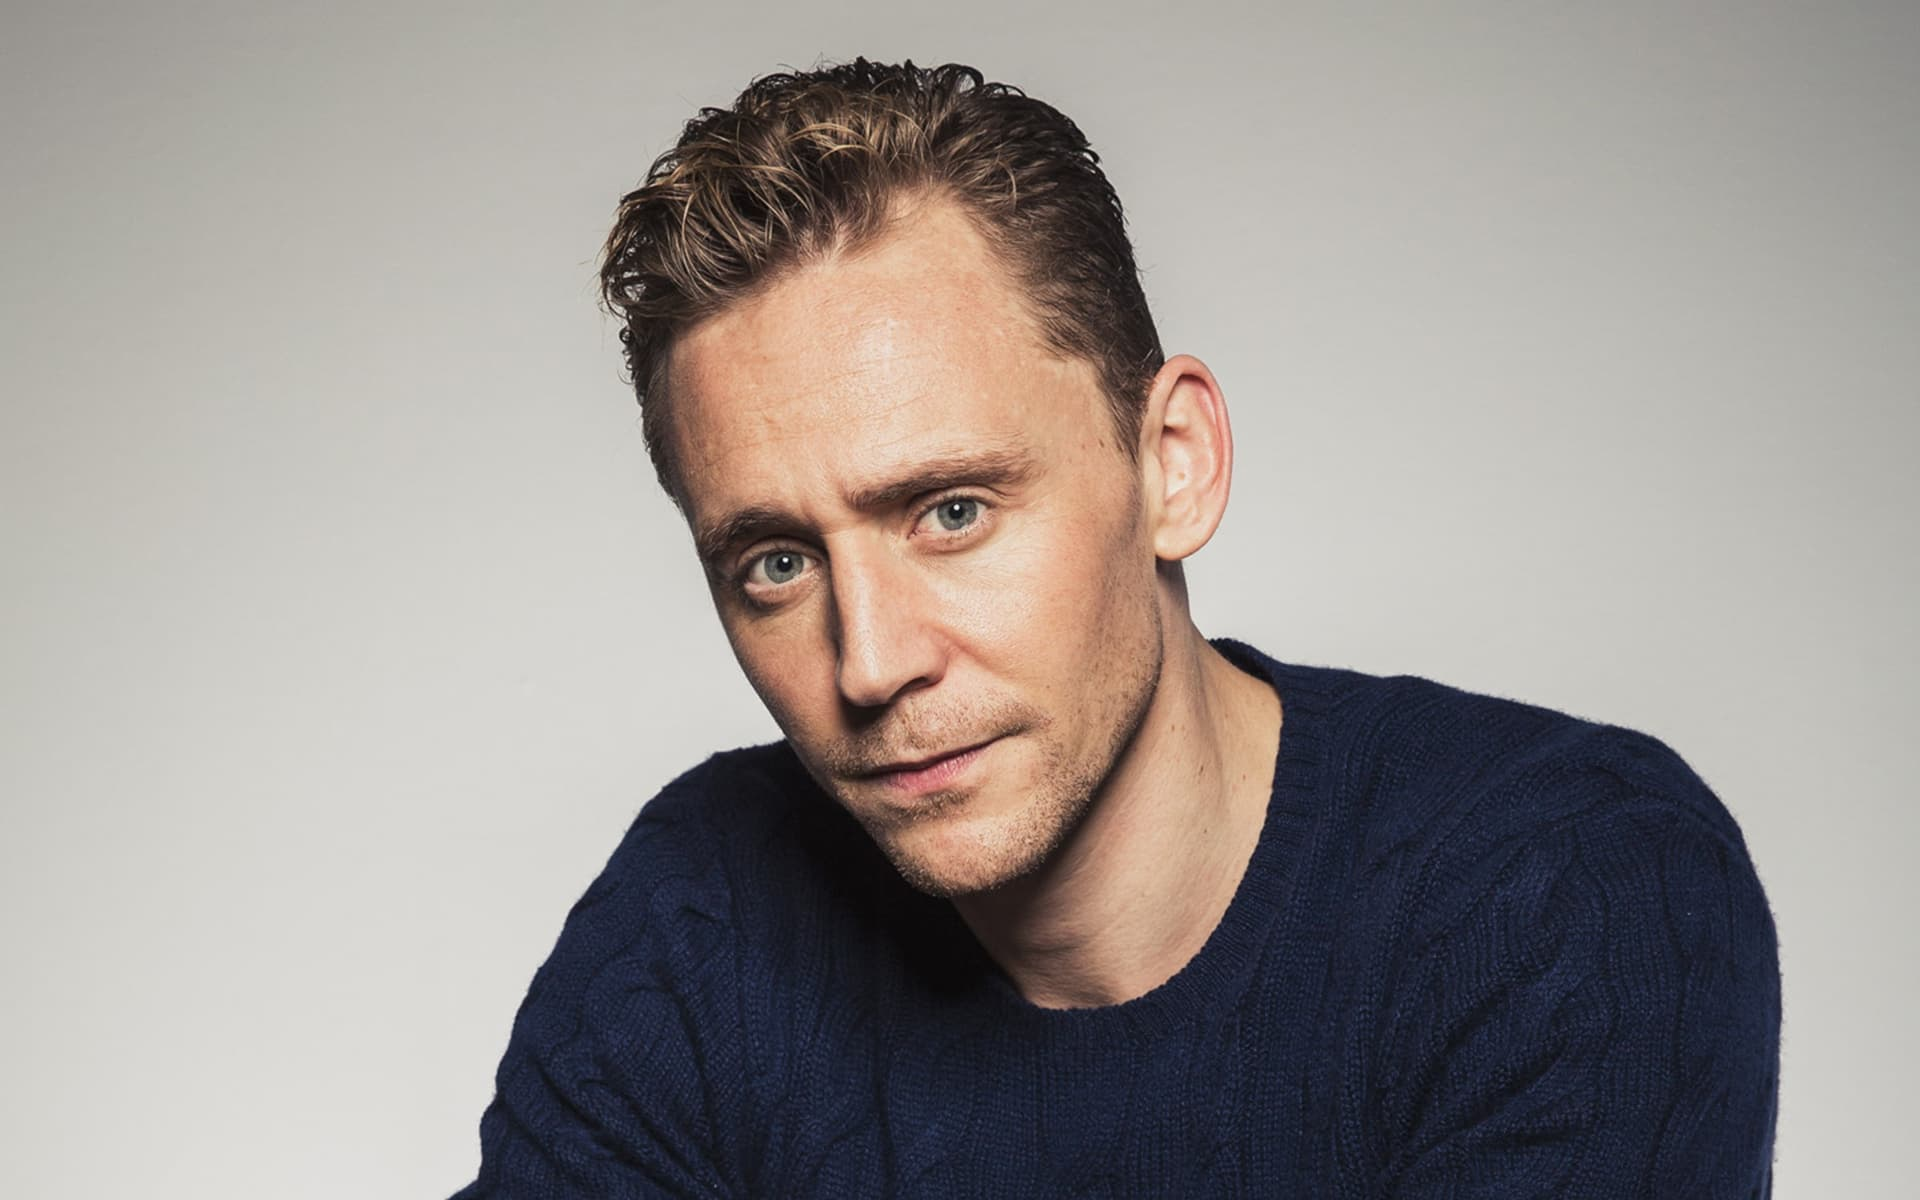 Cute Animals Desktop Wallpapers 15 Tom Hiddleston Wallpapers High Quality Resolution Download